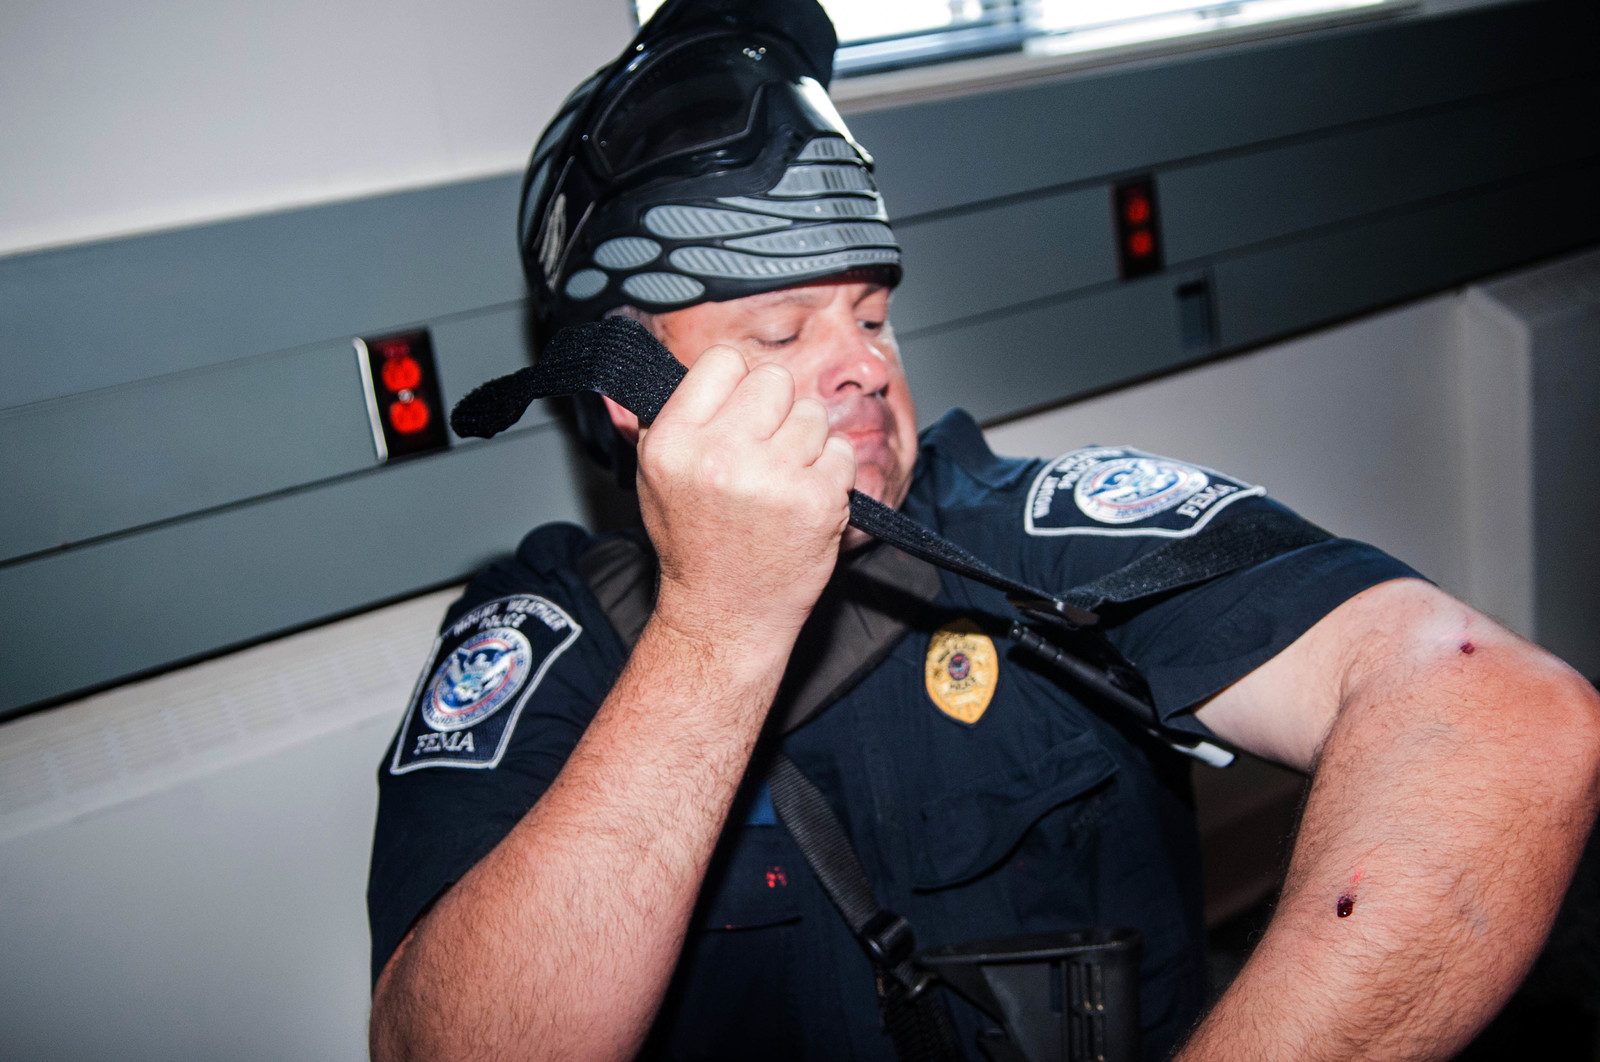 A Mount Weather Police Officer treats a simulated wound